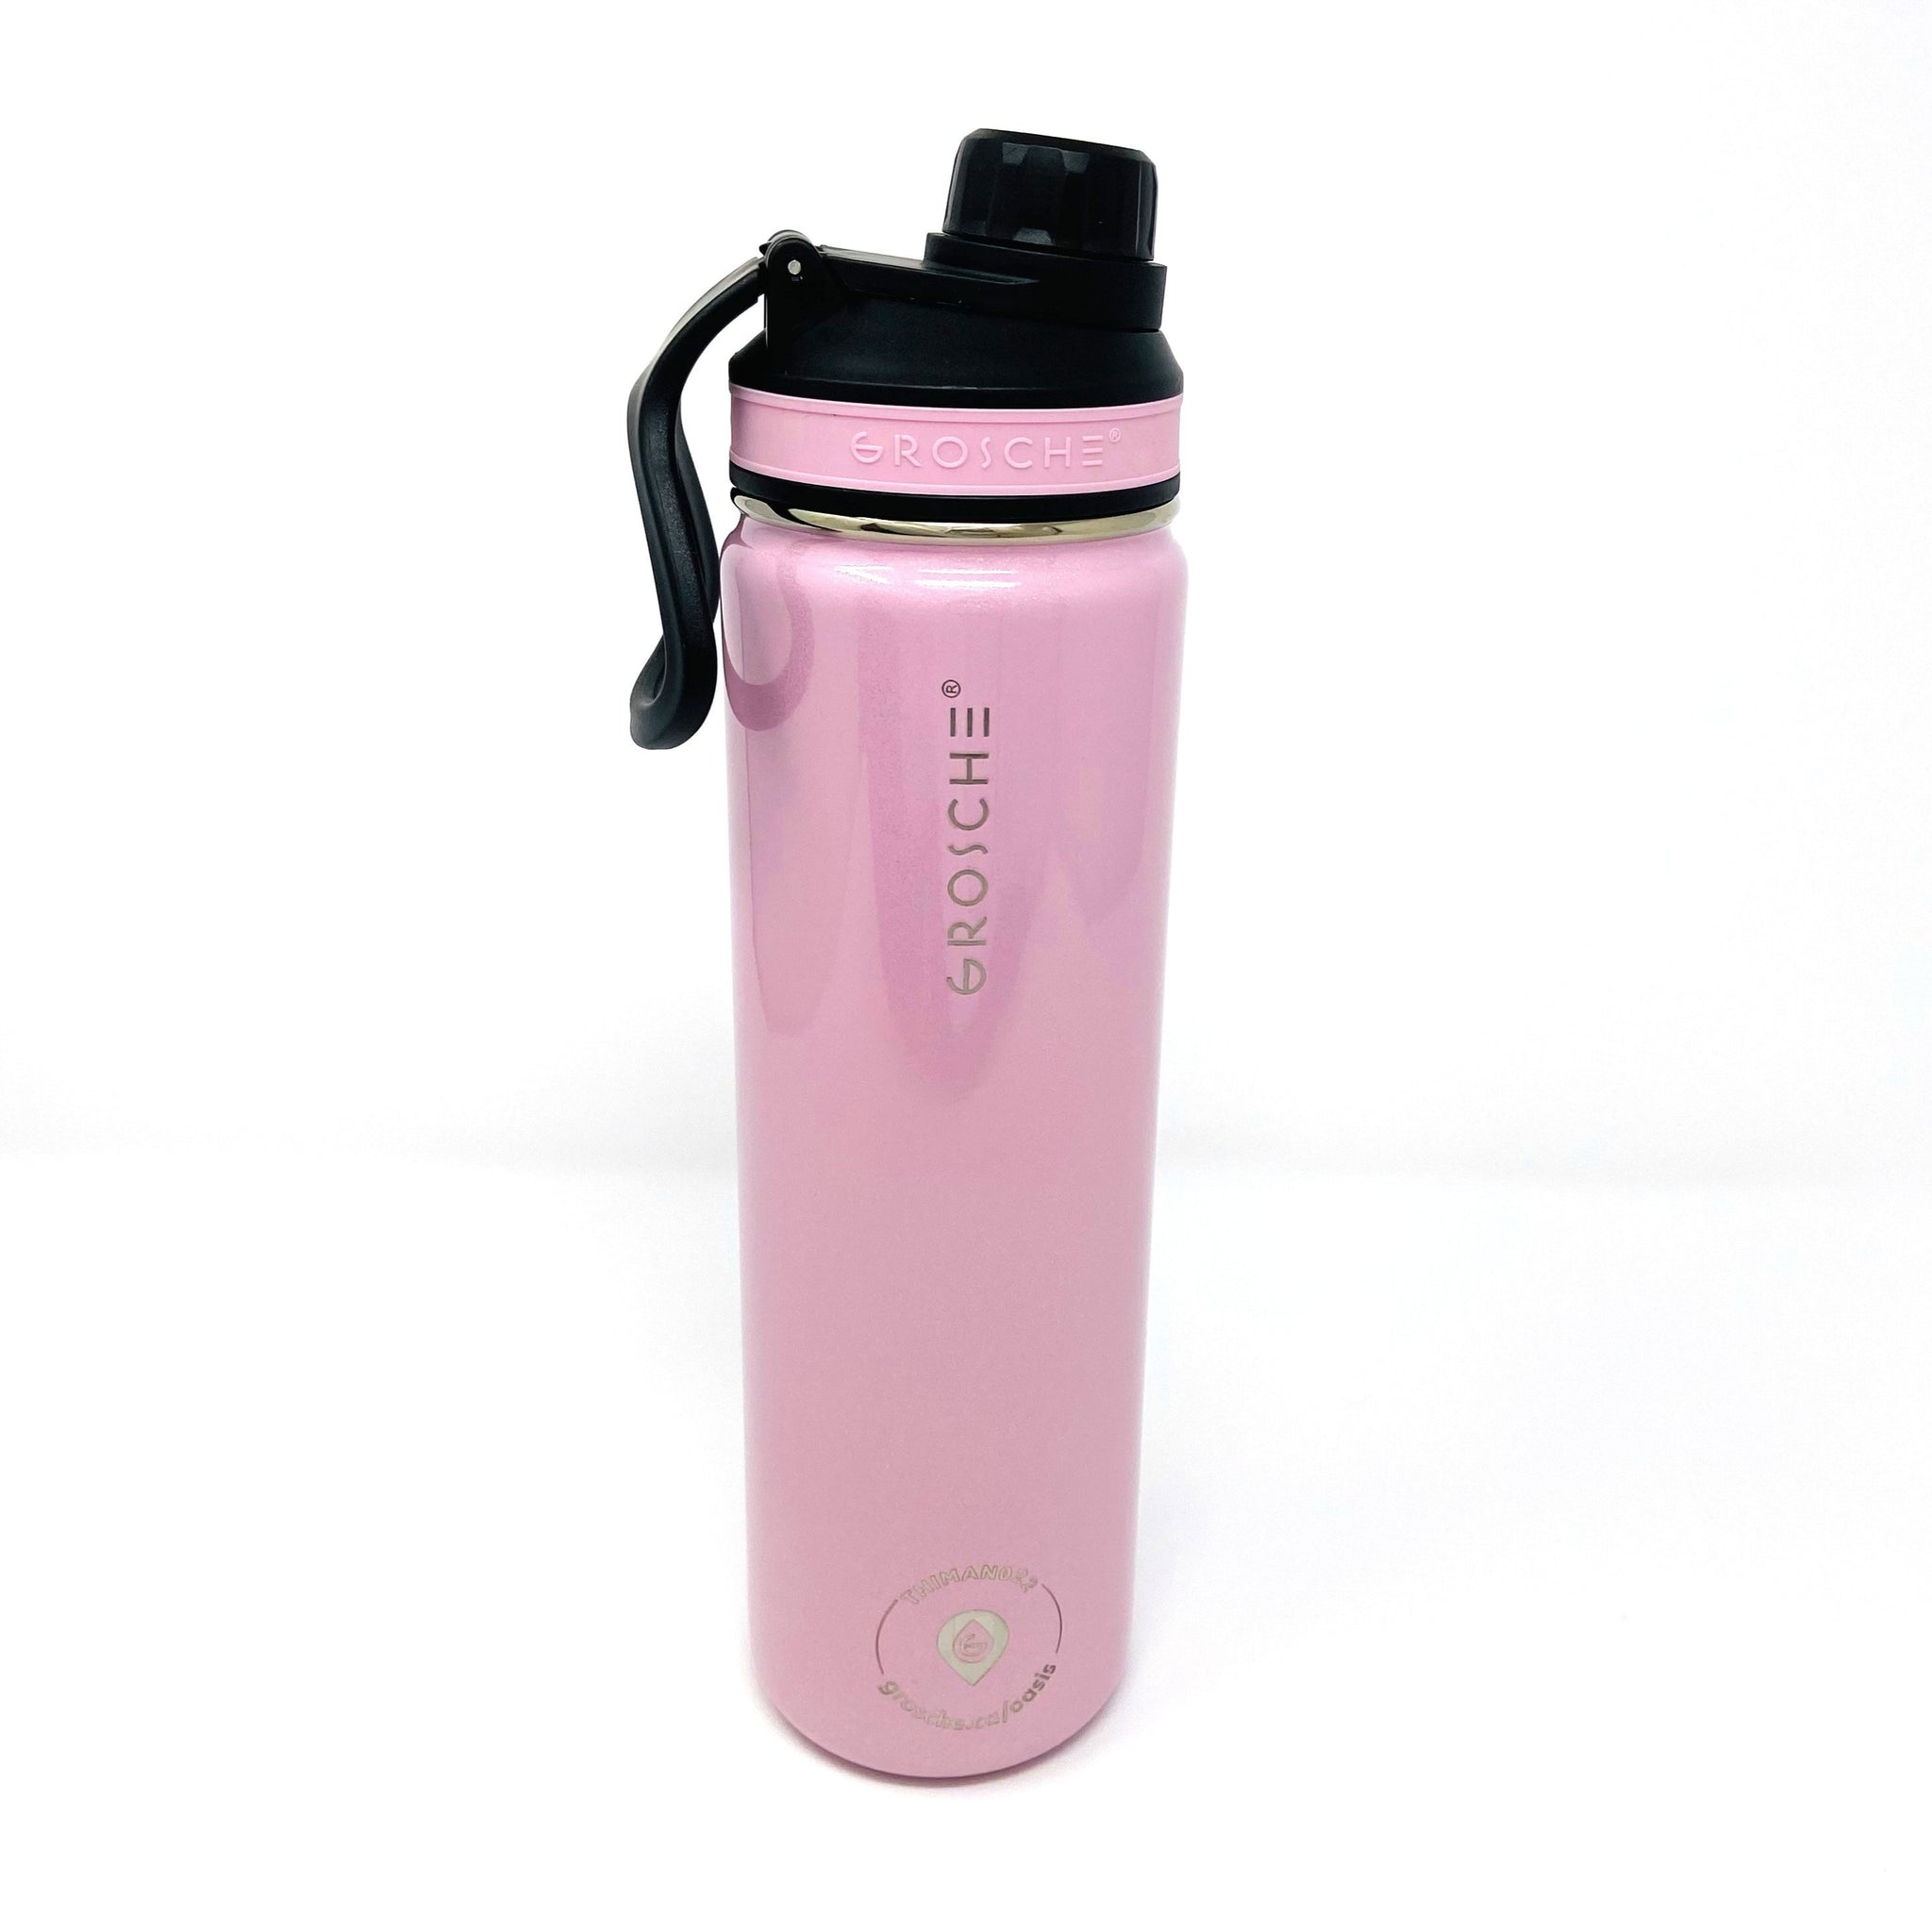 Grosche Oasis Infusion Water Bottle - Rose Quartz